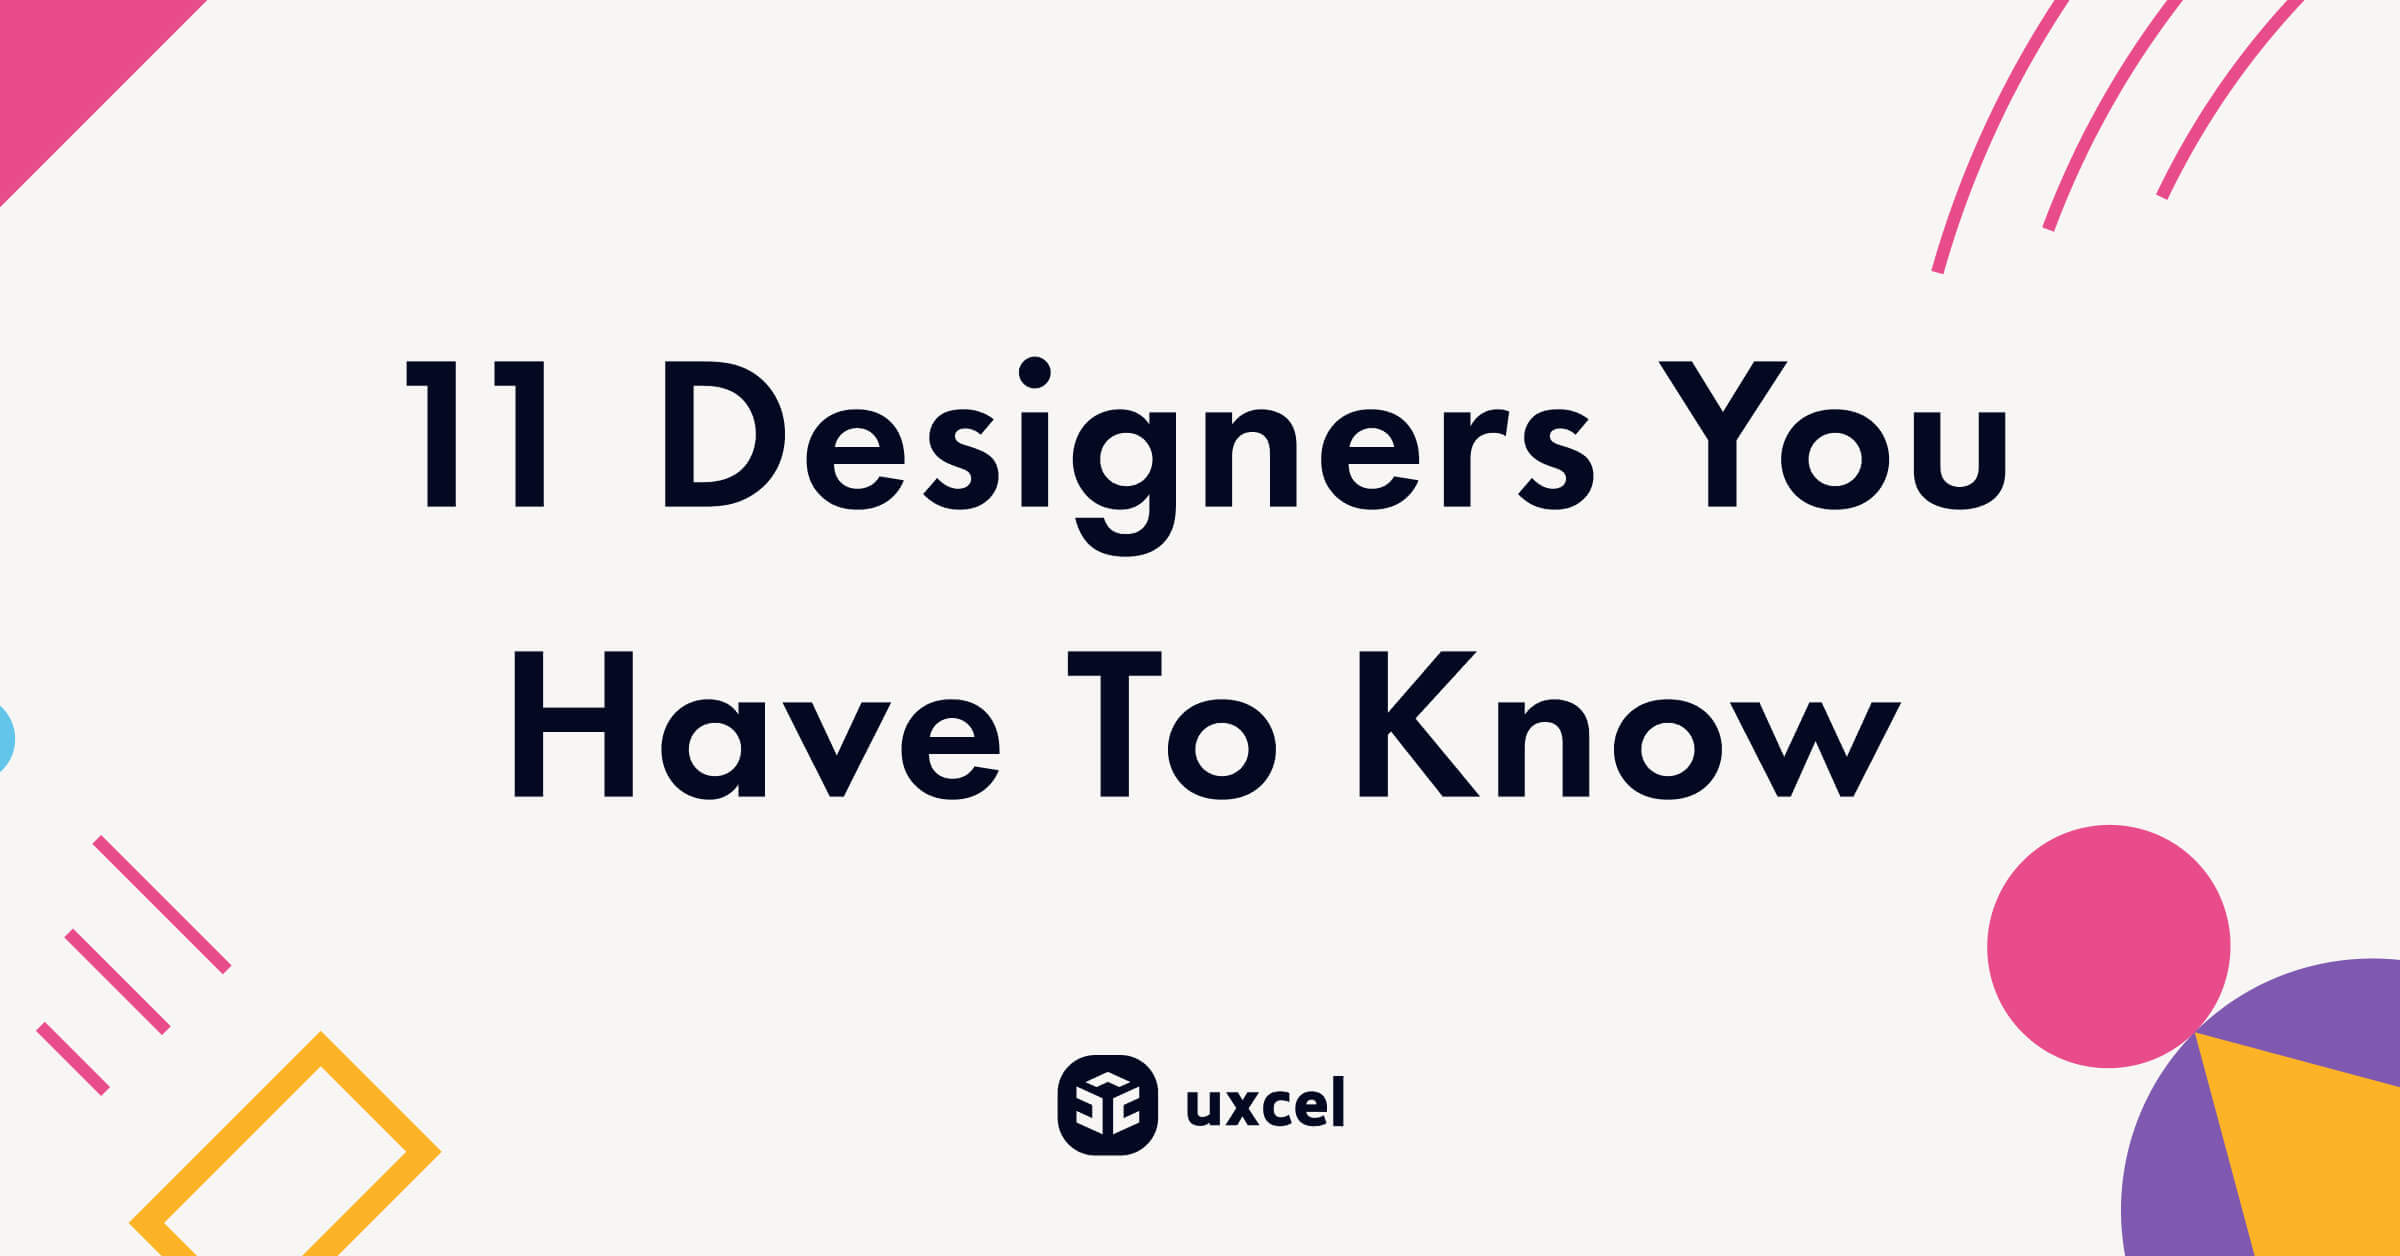 11 Designers You Have to Know